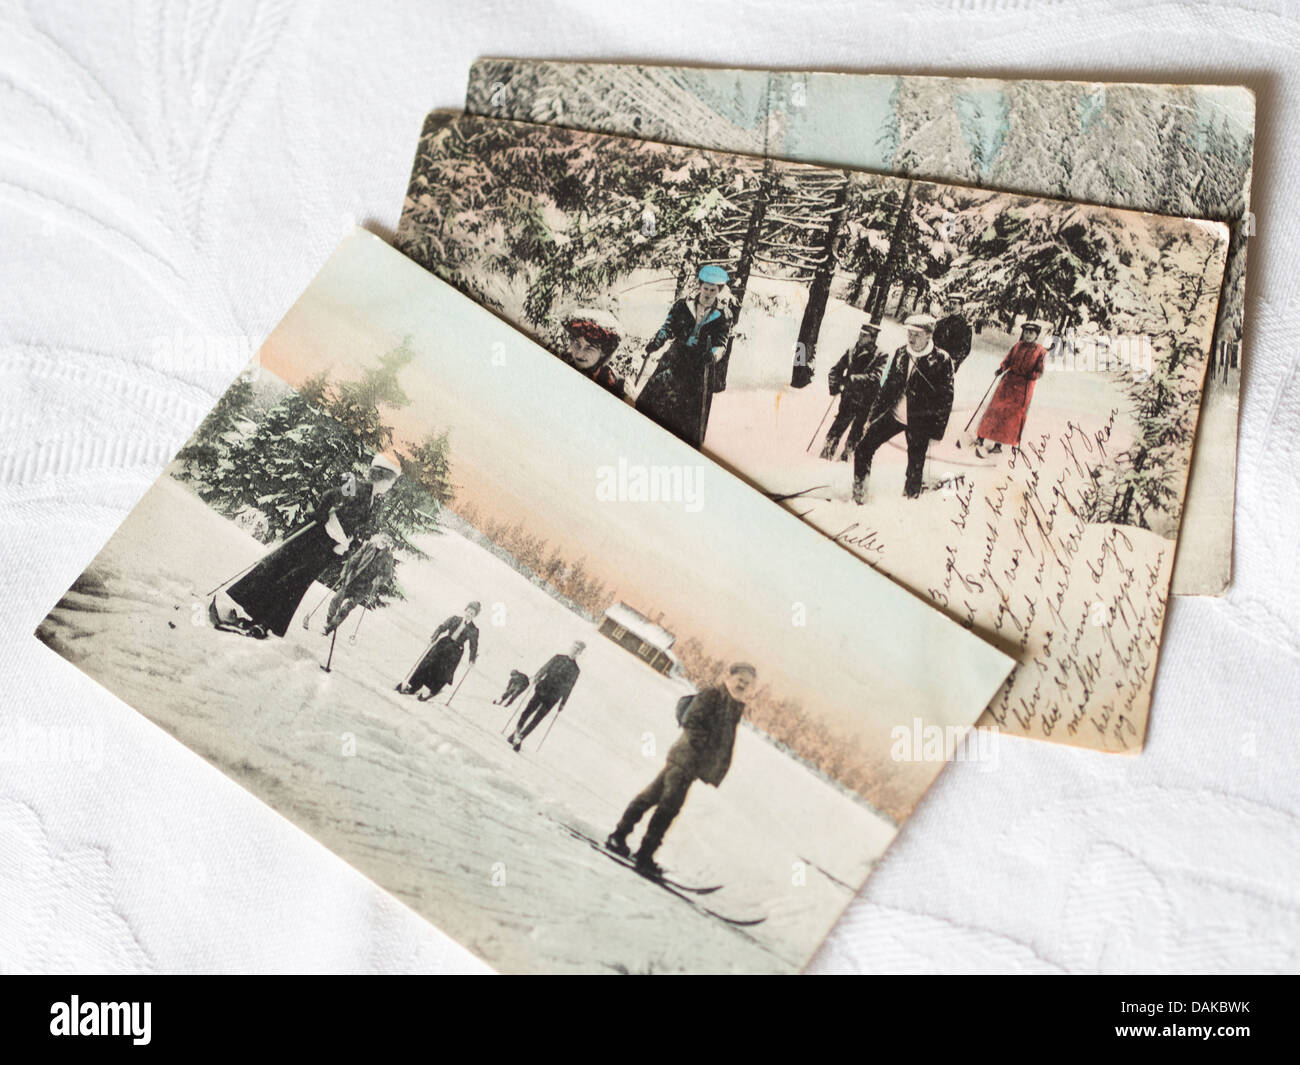 vintage postcards with winter scene, men and women skiing in the woods, writing on front - Stock Image